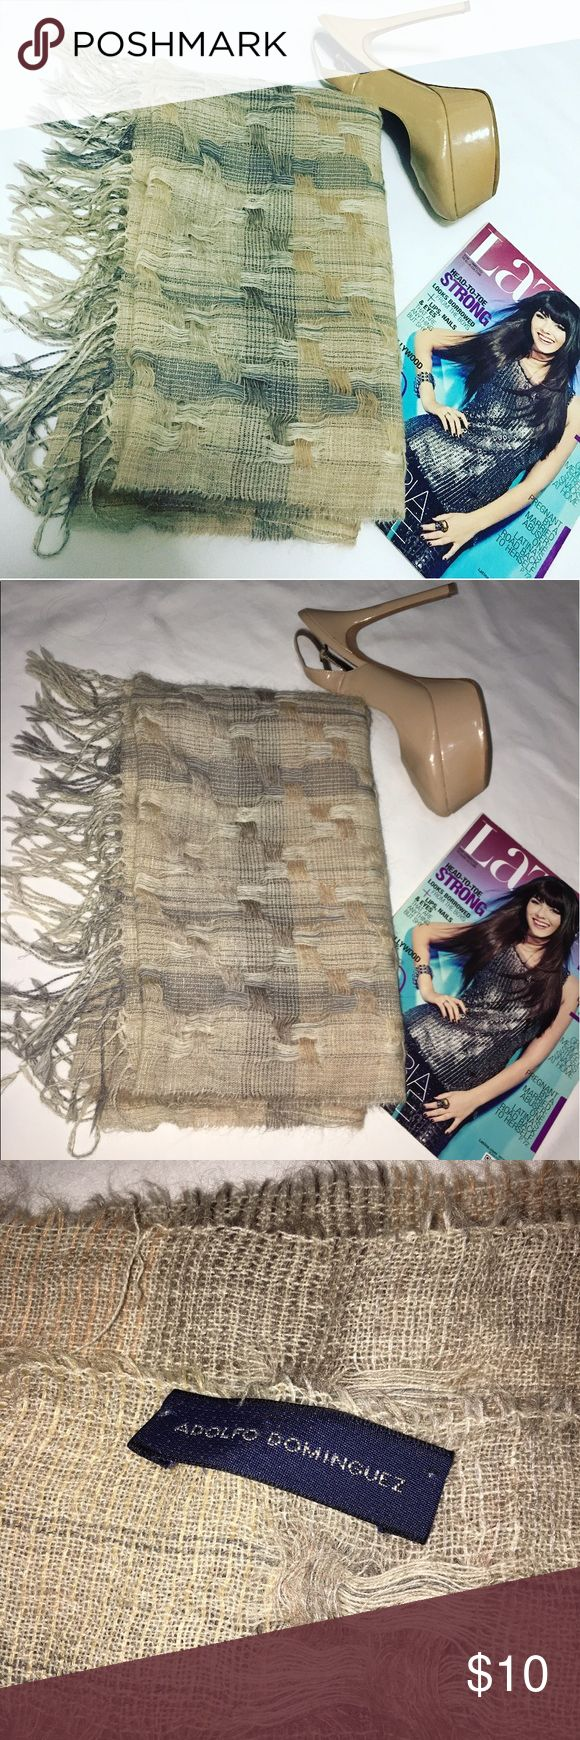 Adolfo Domínguez Tan Weaved Scarf In good condition Adolfo Dominguez Accessories Scarves & Wraps